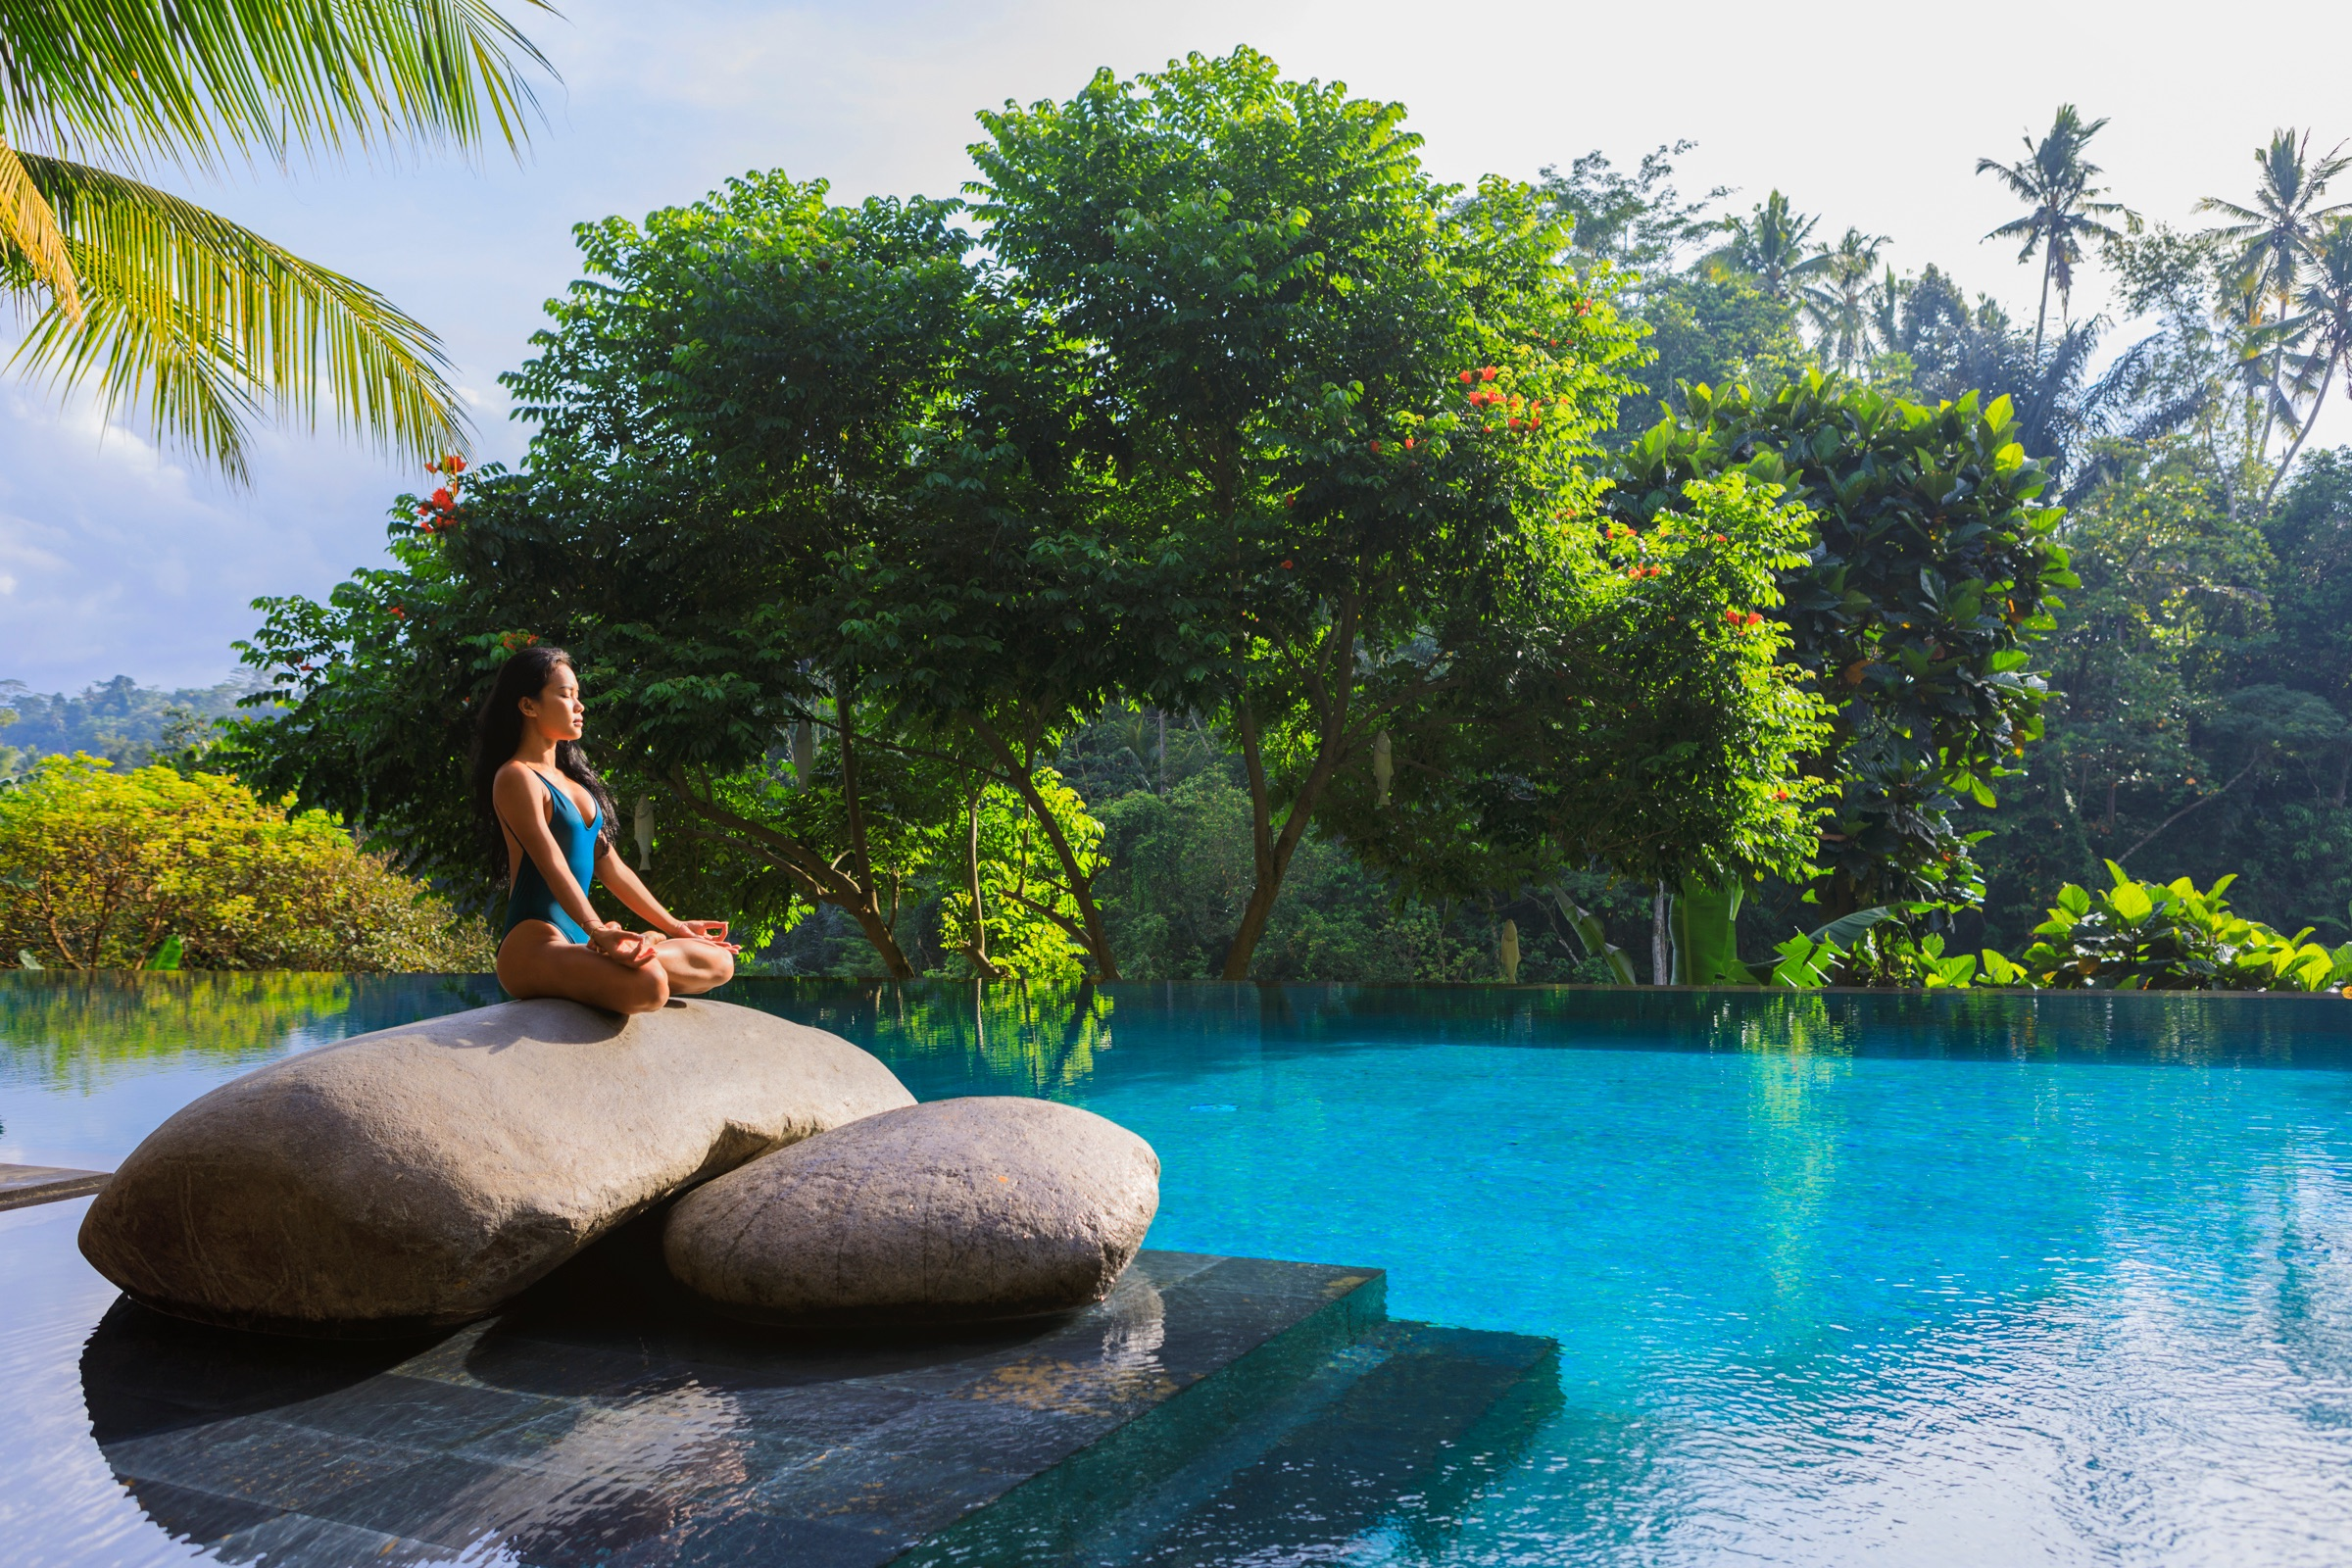 Yoga by a tropical pool setting.